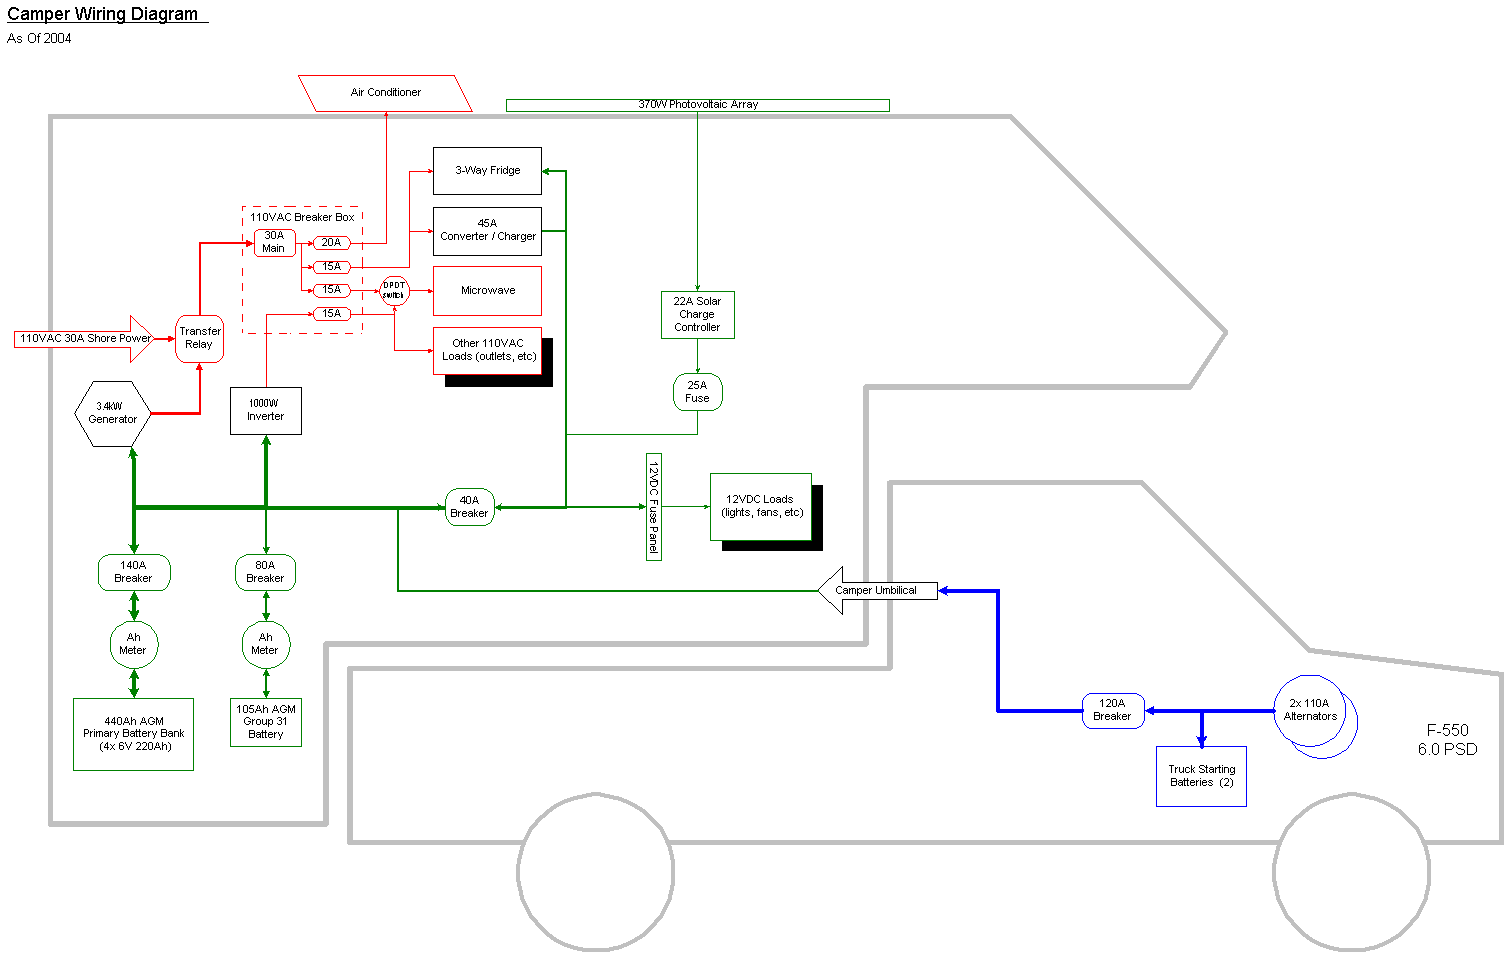 2004Diagram 2004 camper wiring diagram truck camper wire harness at gsmportal.co